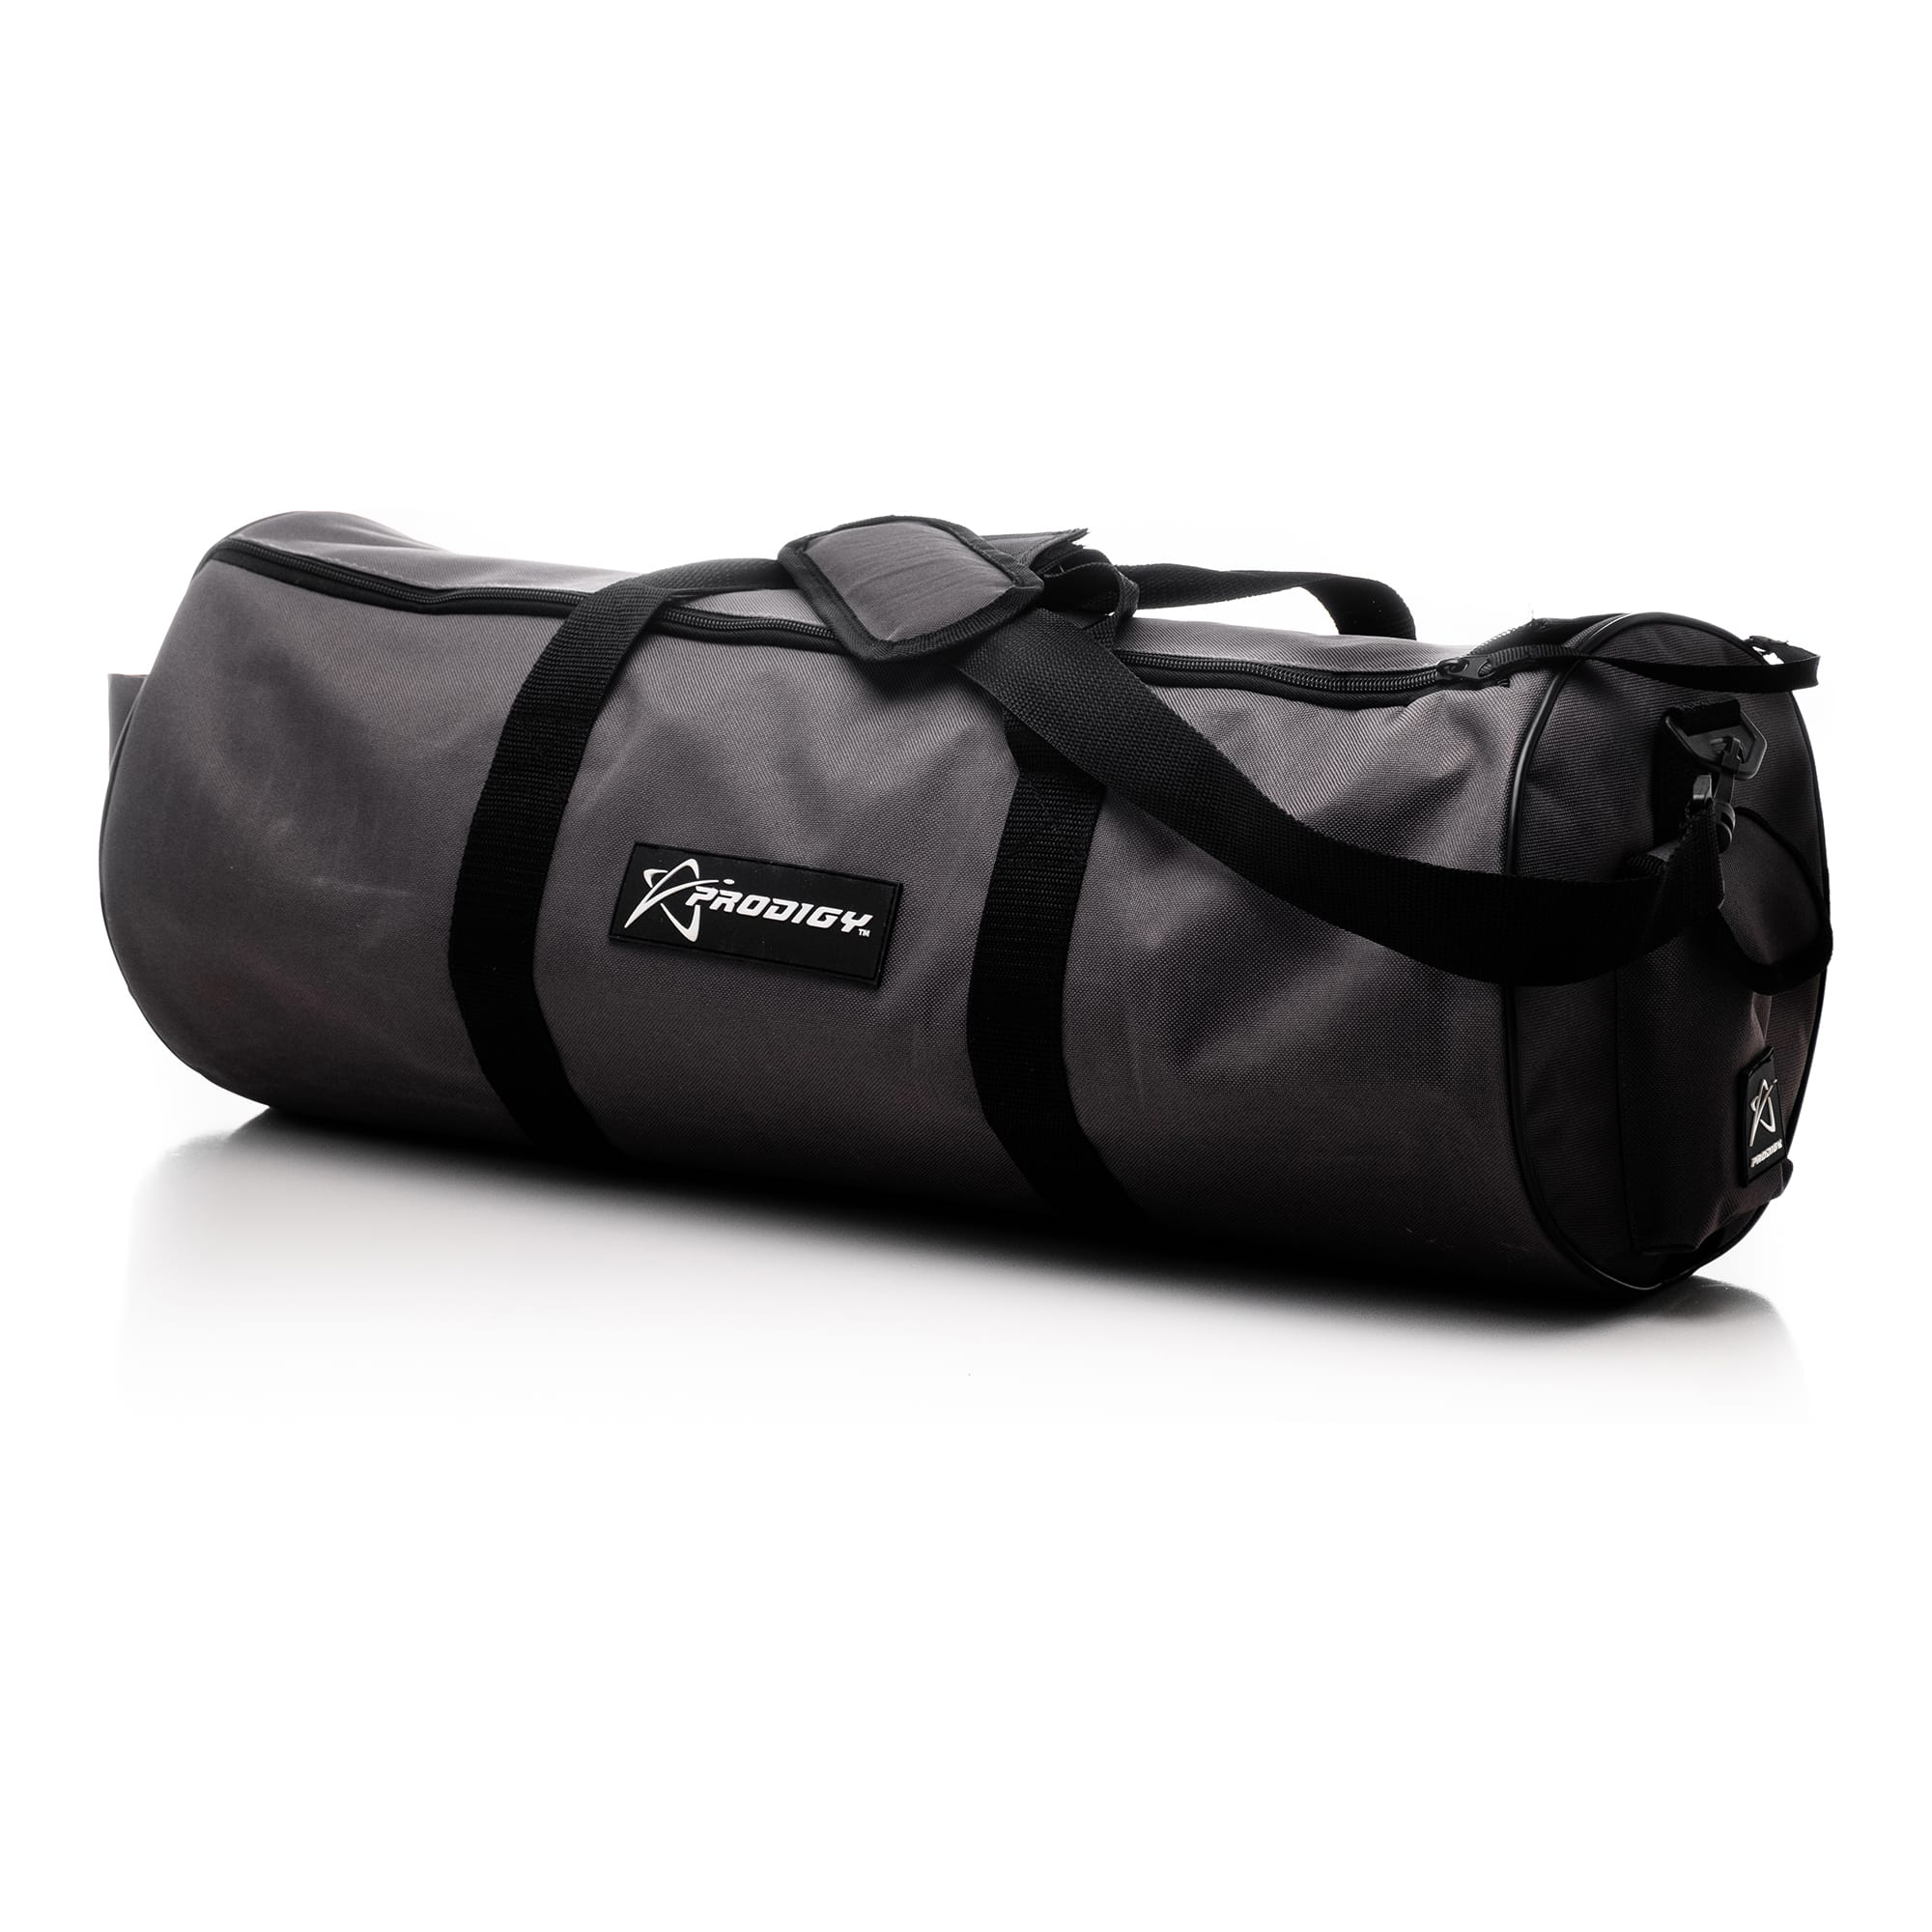 practice-bag-v2-grey-front-closed_opt.jpg